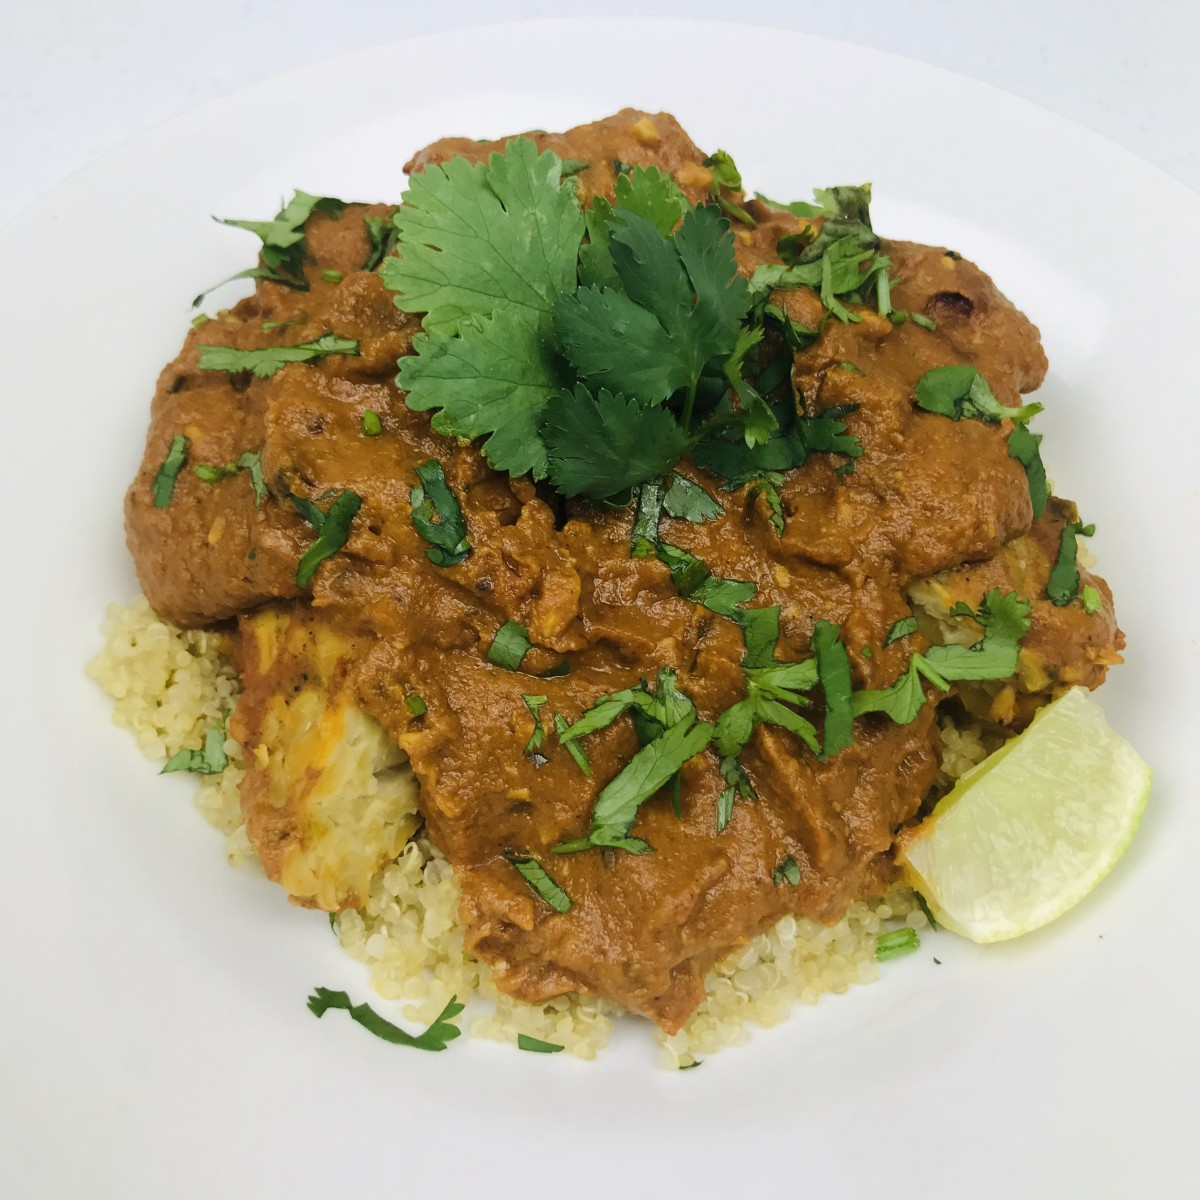 Garnish the tikka masala with cilantro and a lime wedge or two. Enjoy!